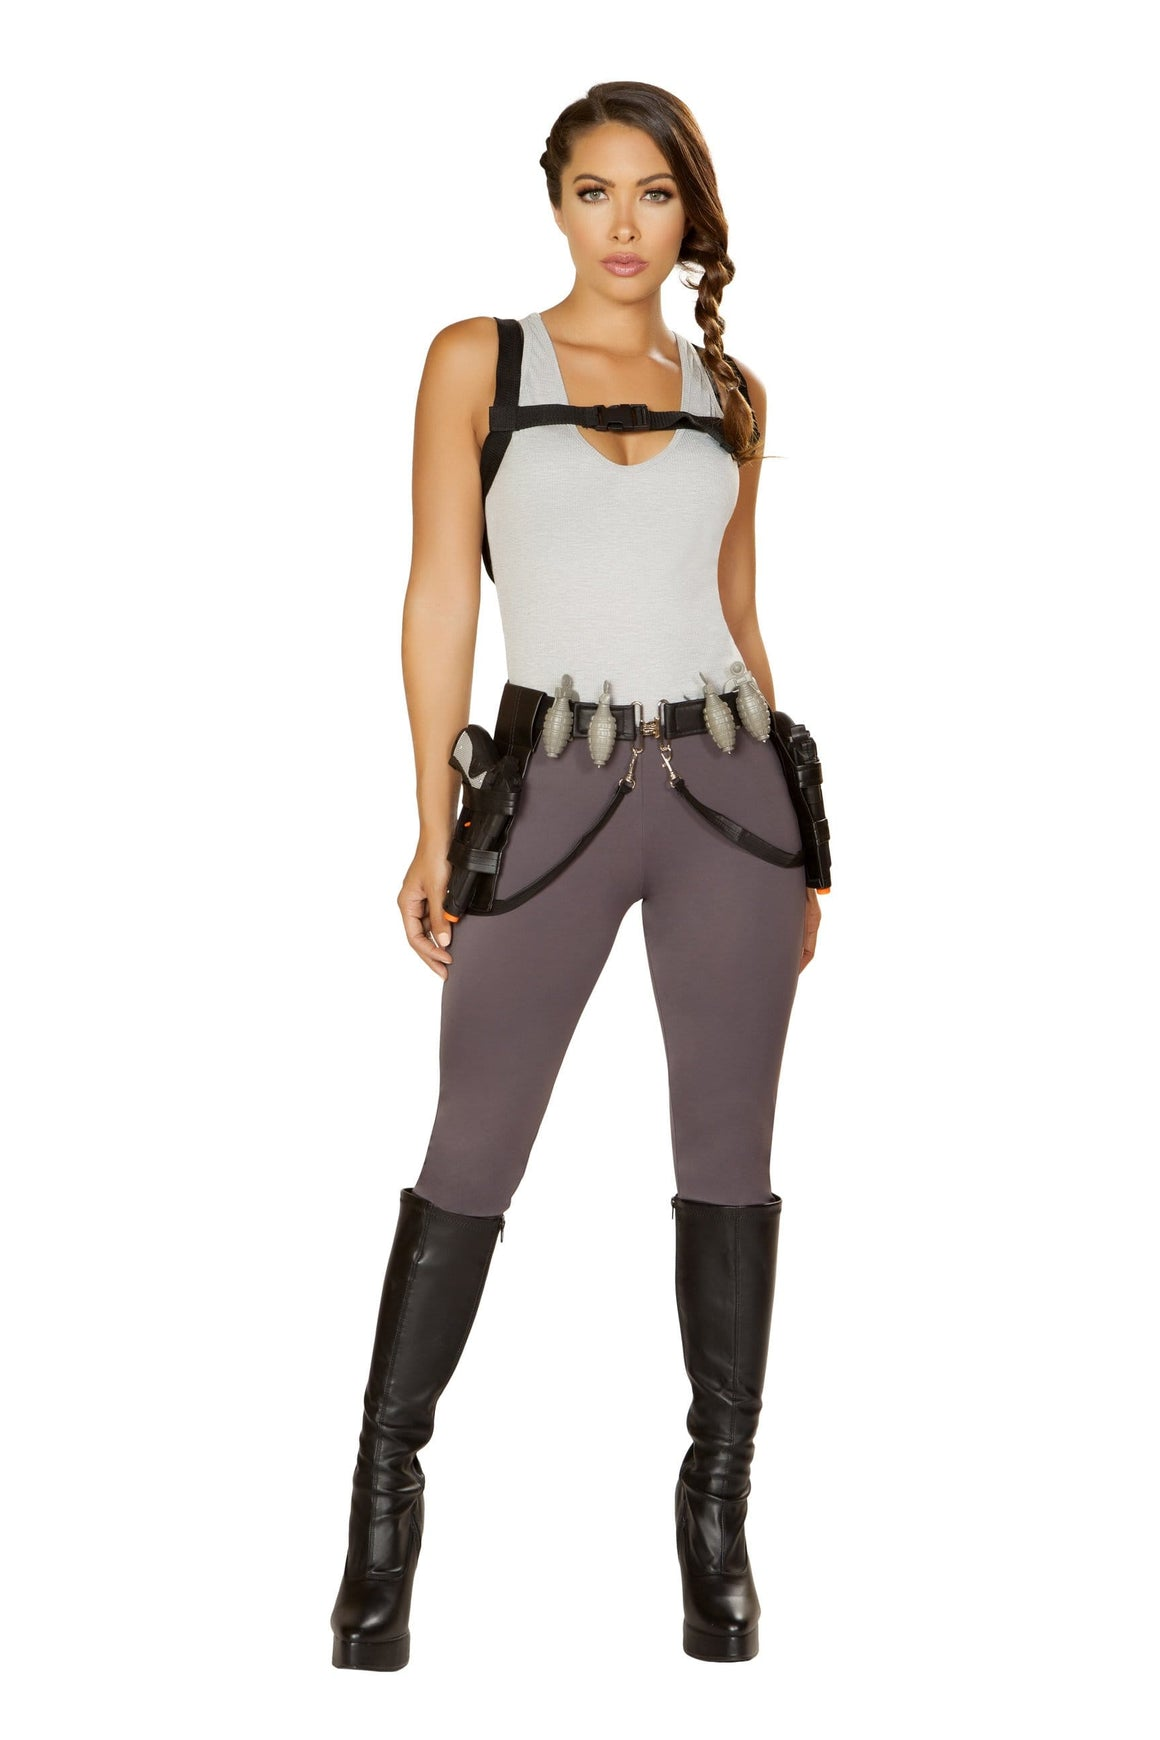 Roma Small / Grey 5pc Cyber Adventure SHC-4847-S-R Apparel & Accessories > Costumes & Accessories > Costumes